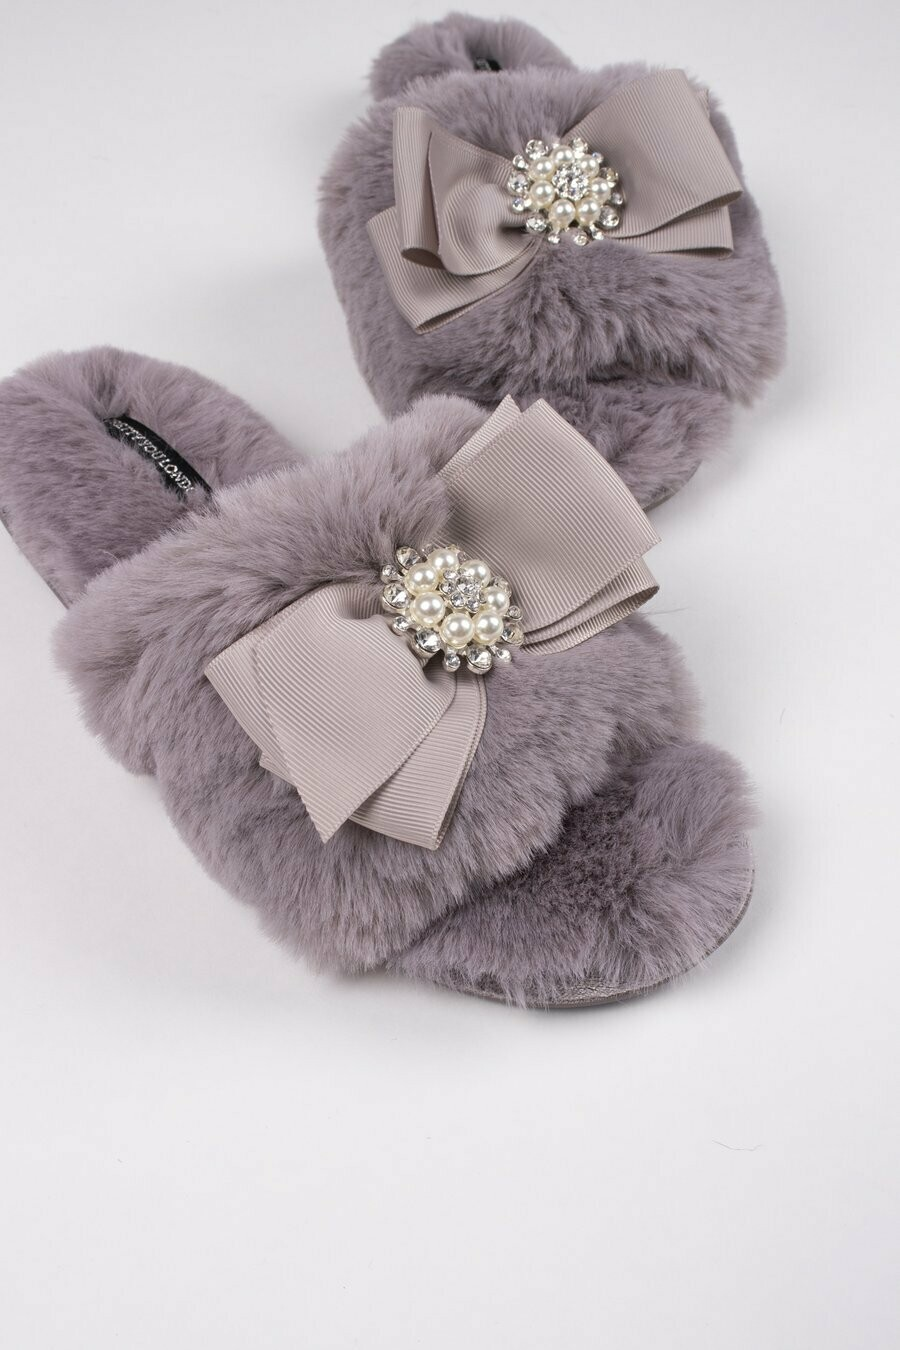 Women's Mink Slide Rhinestone Luxe Slipper -Size 5/6 thru 9.5/10.5